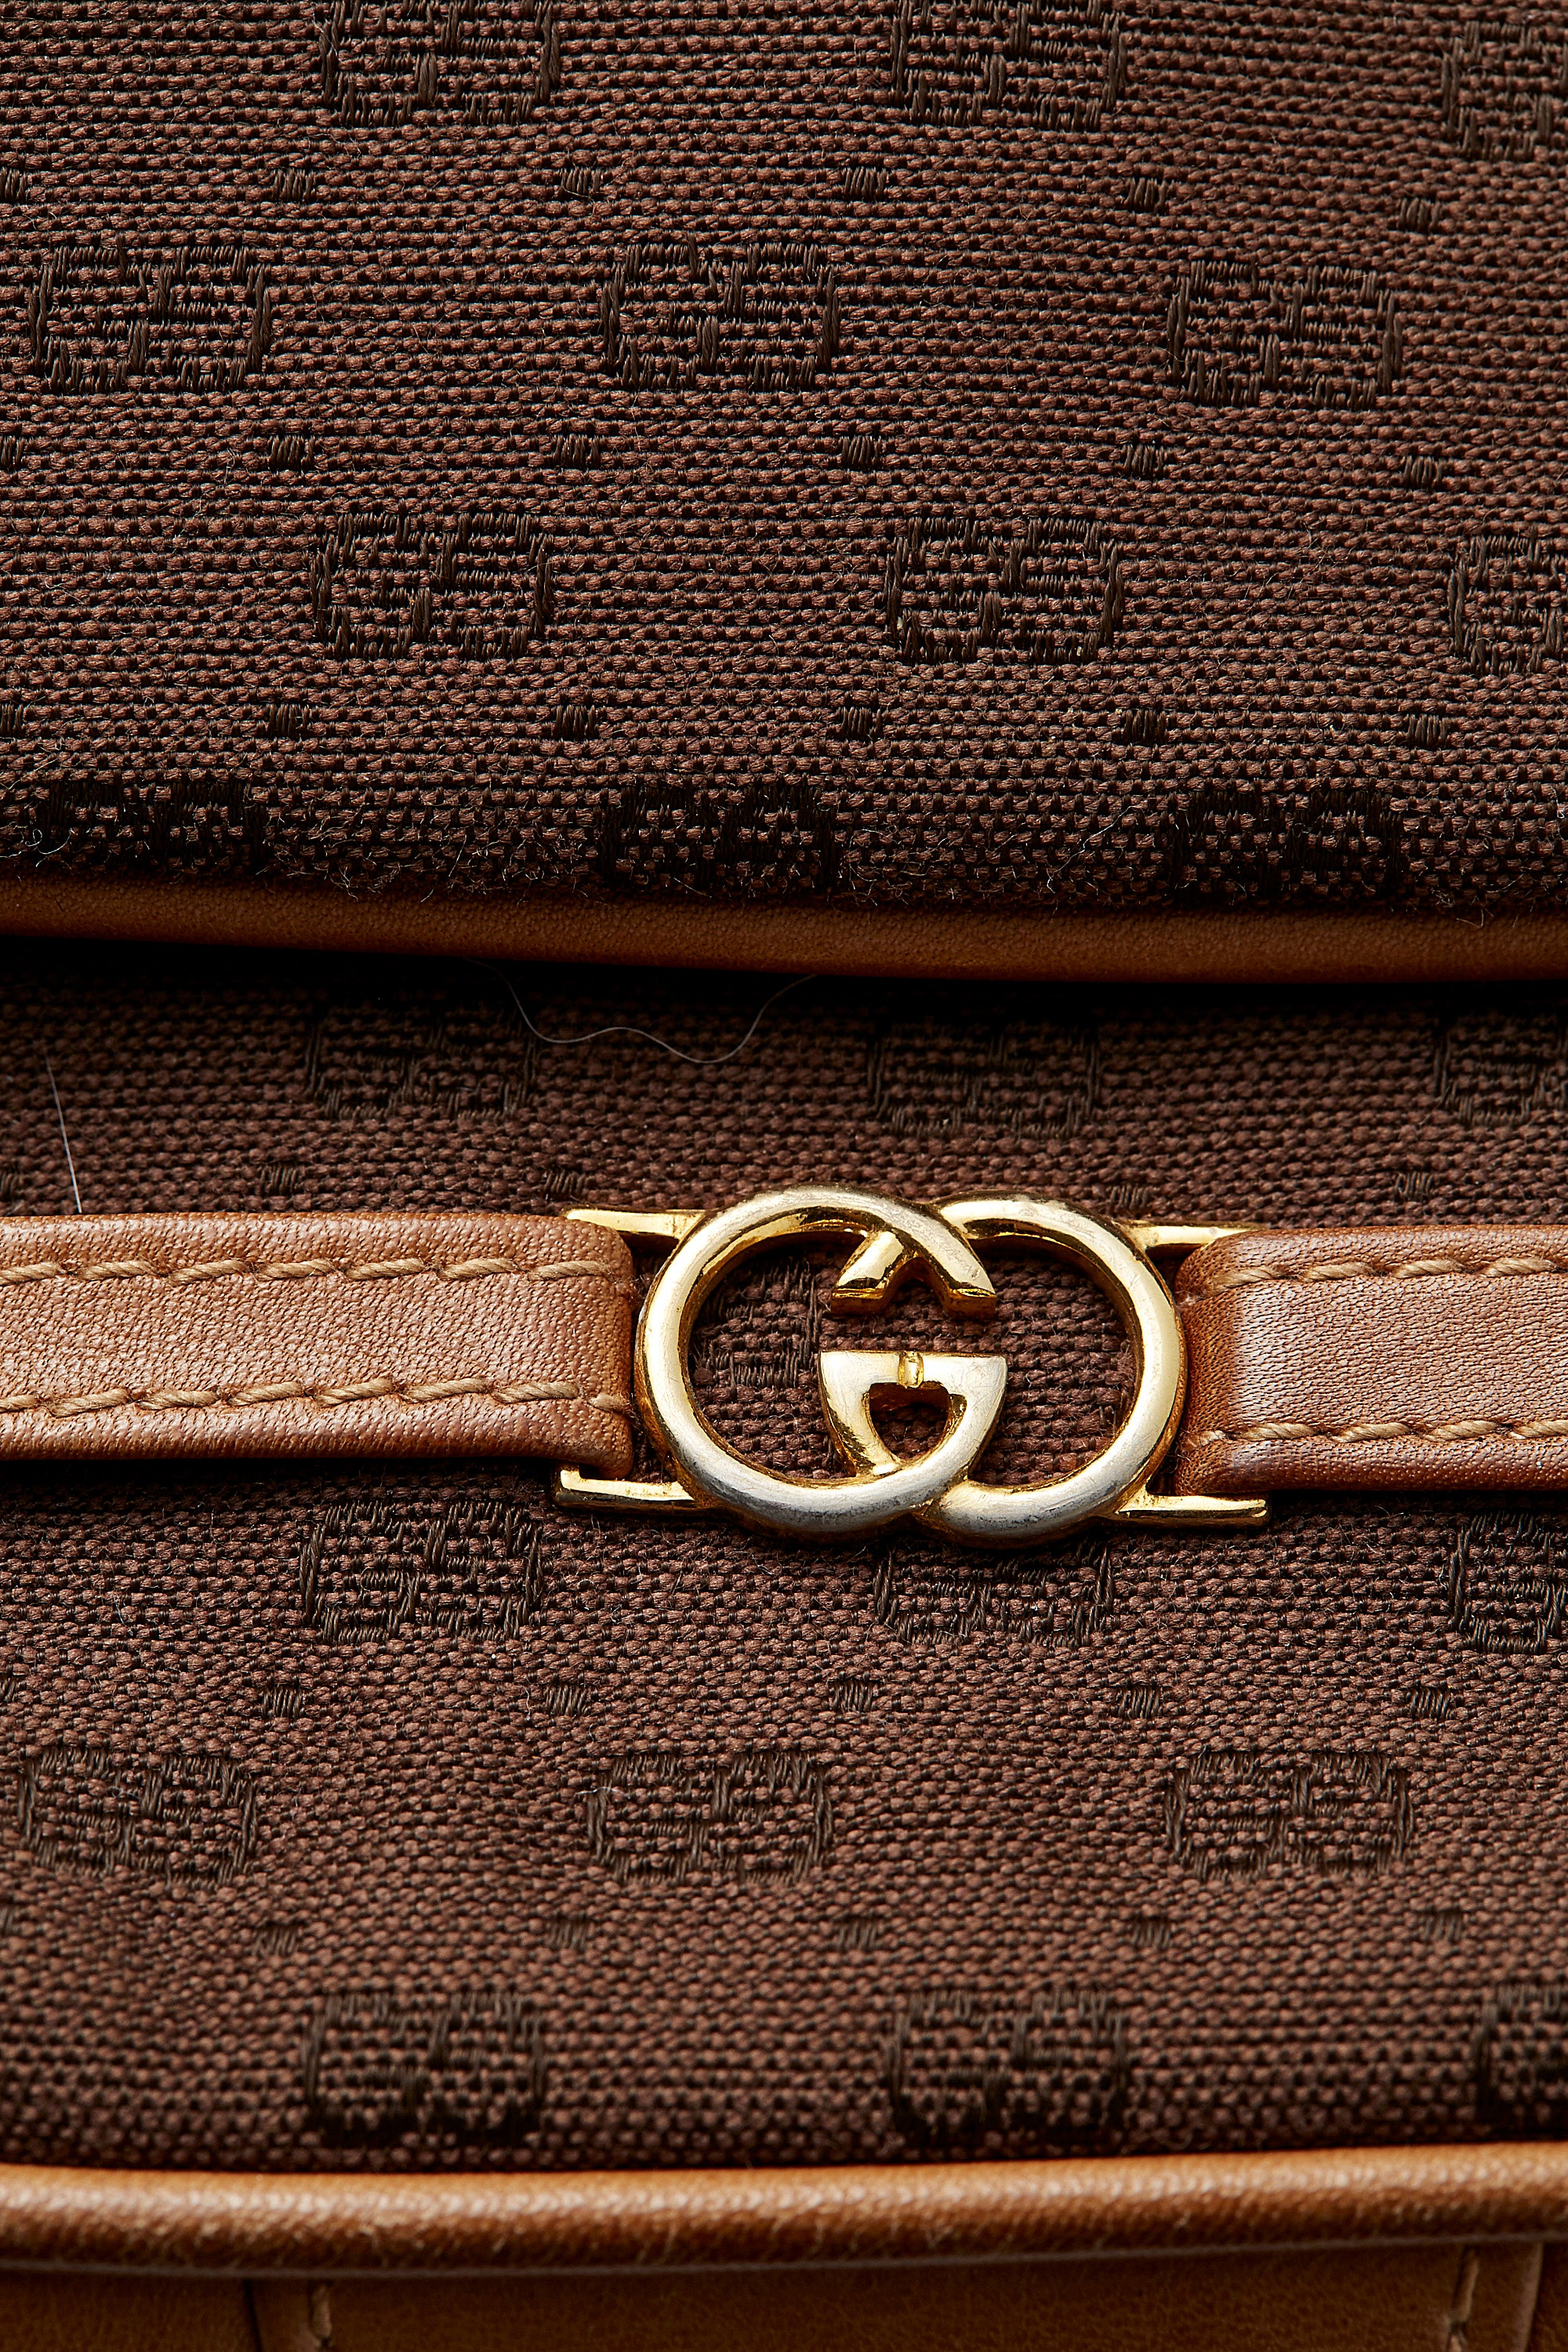 Gucci <br> 1970's tan leather & brown monogram logo shoulder bag